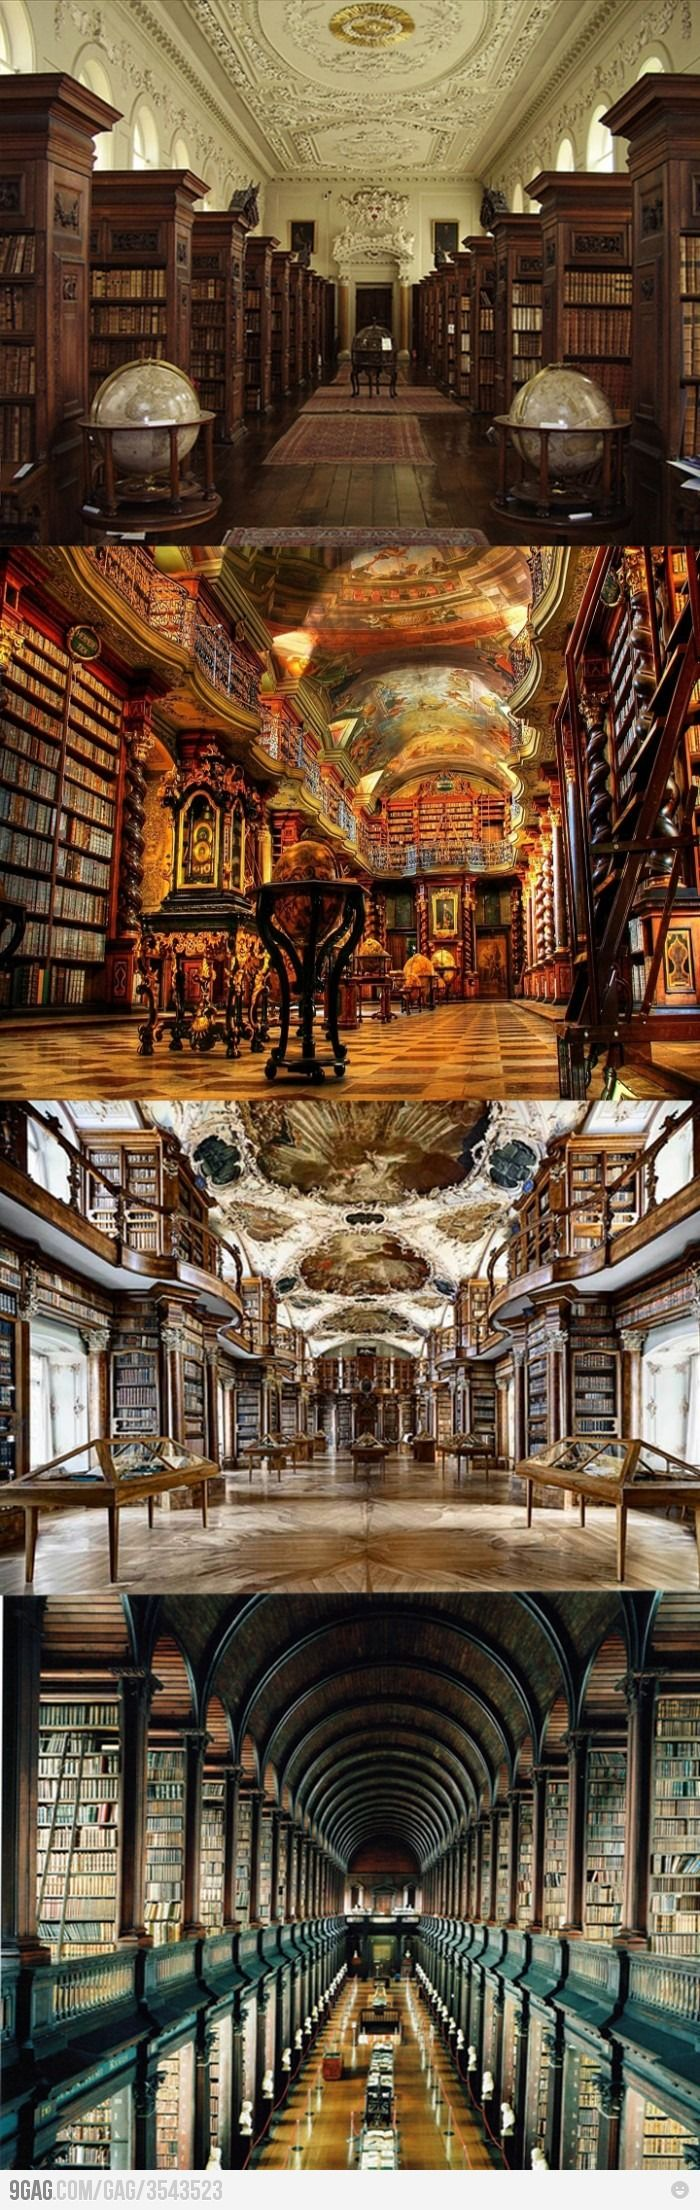 Awesome libraries are awesome!